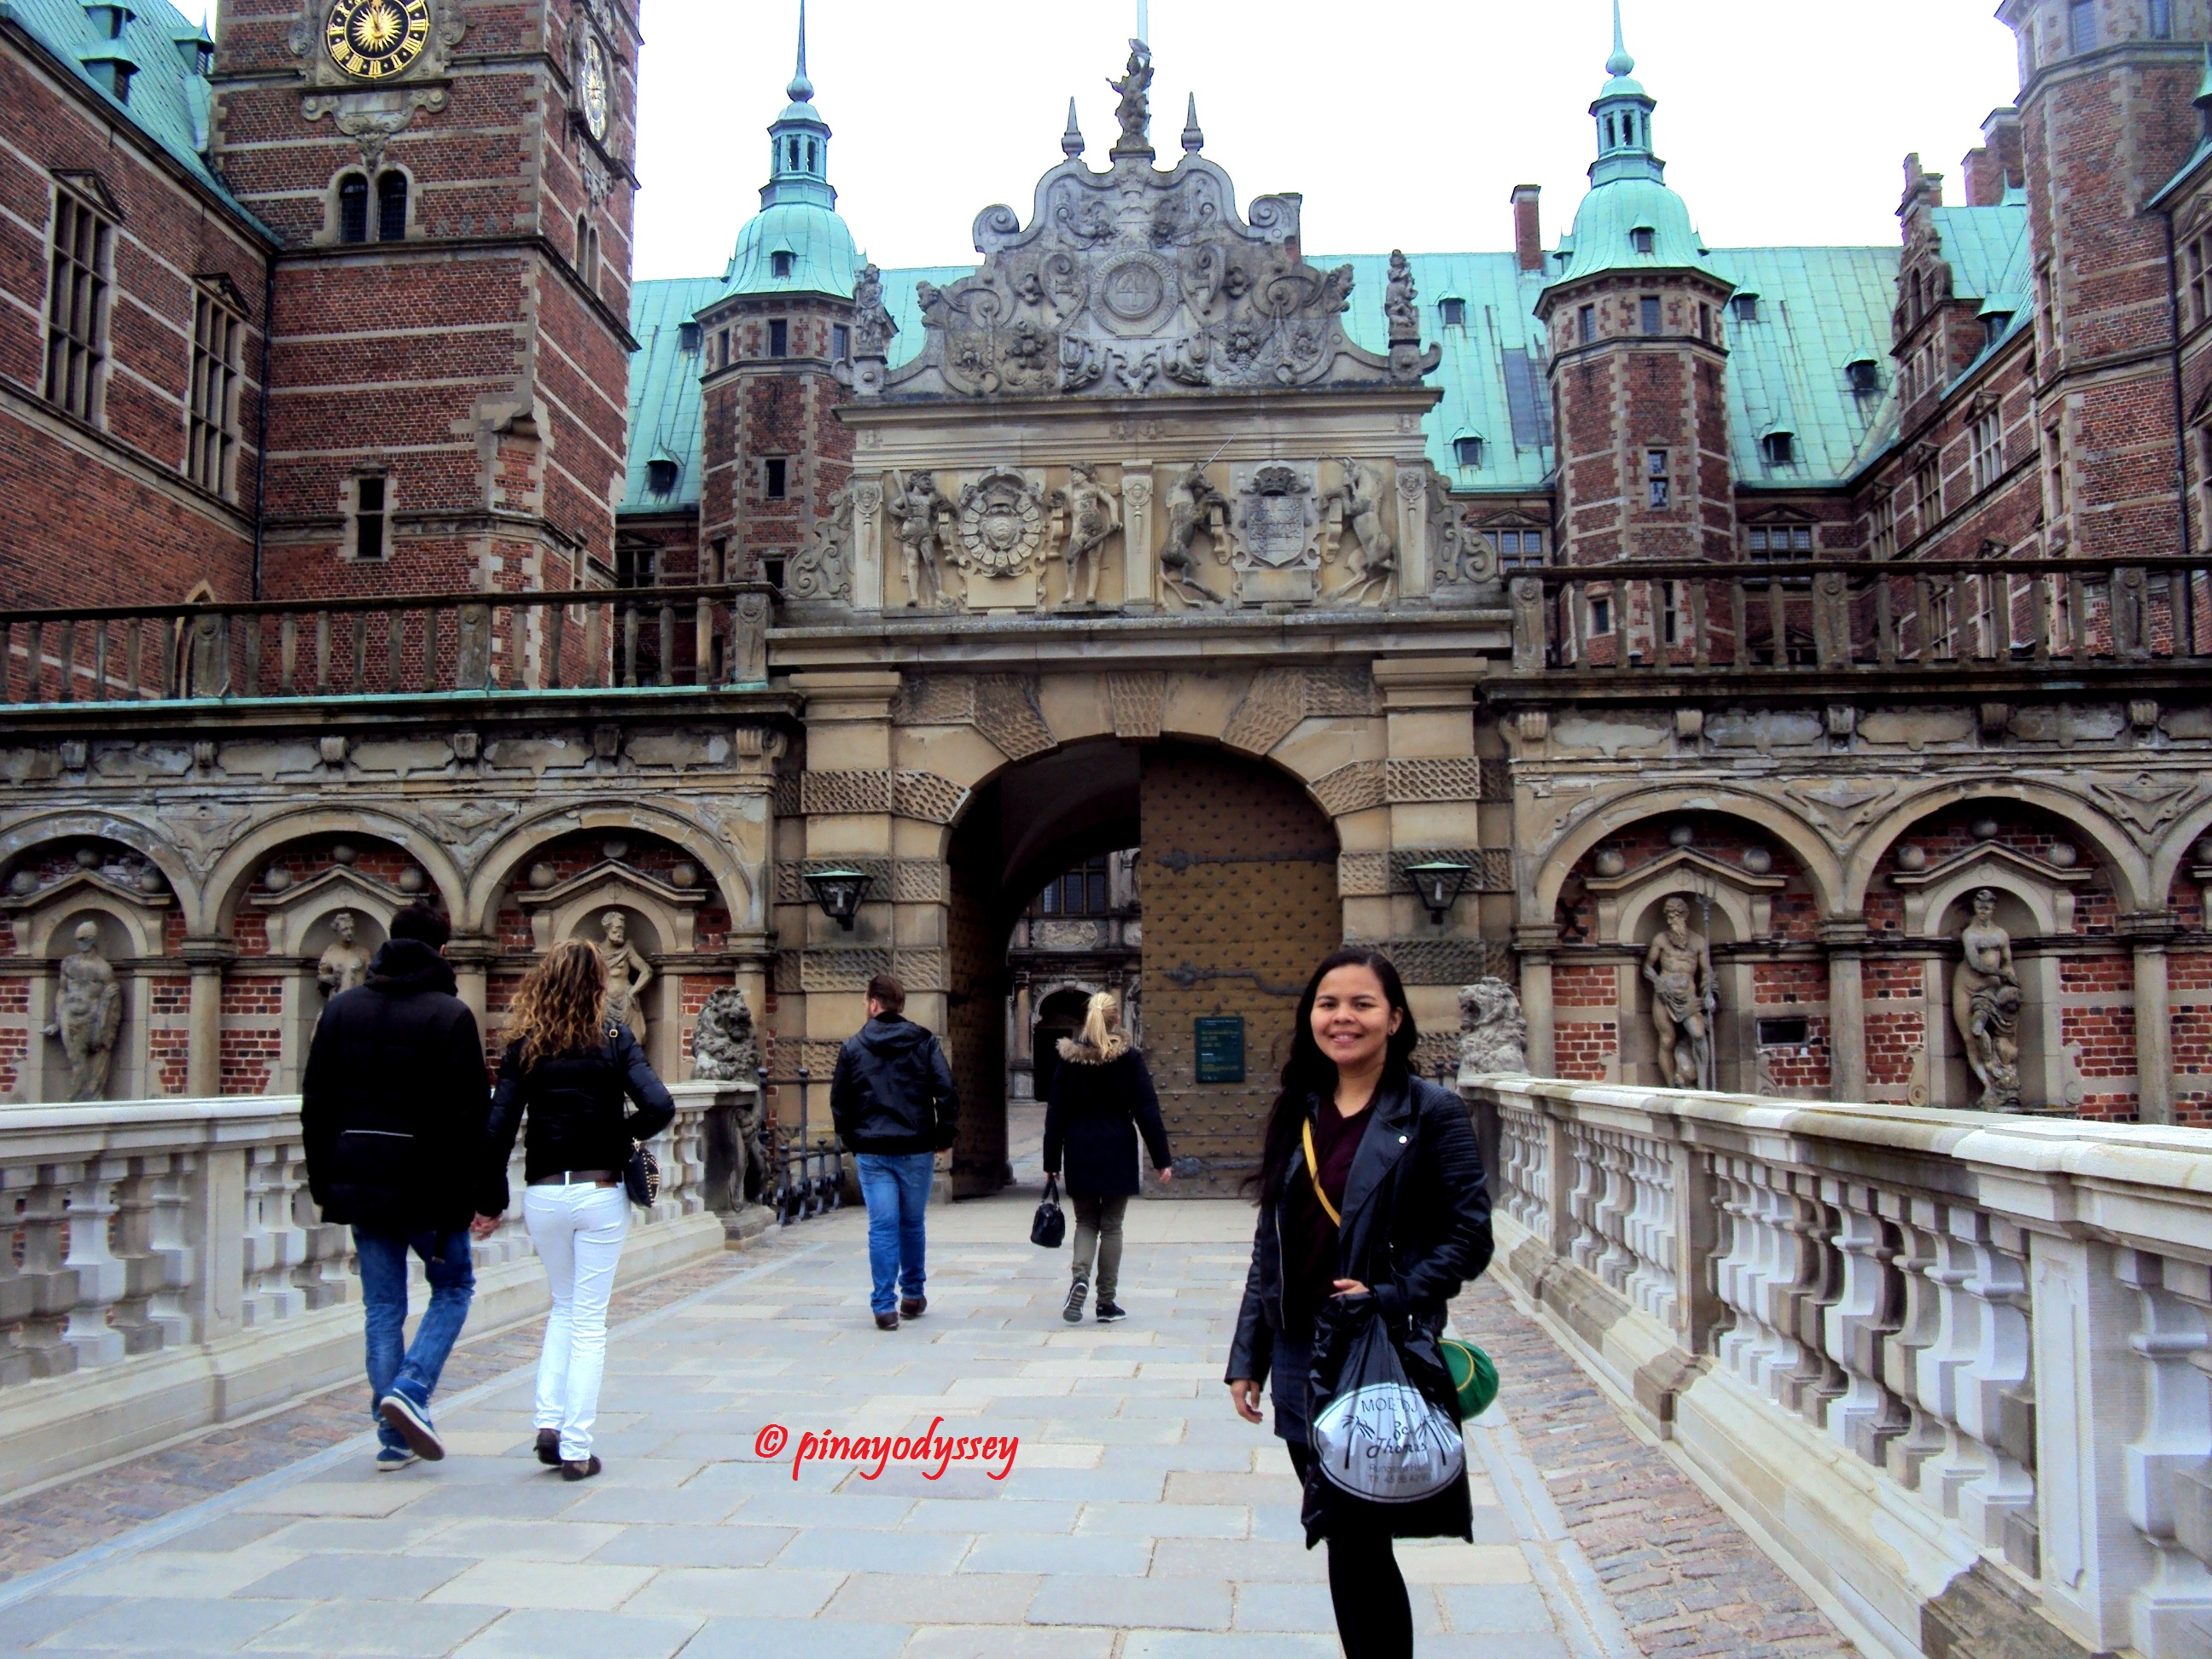 The museum of national history at frederiksborg castle copenhagen - Frederiksborg Castle